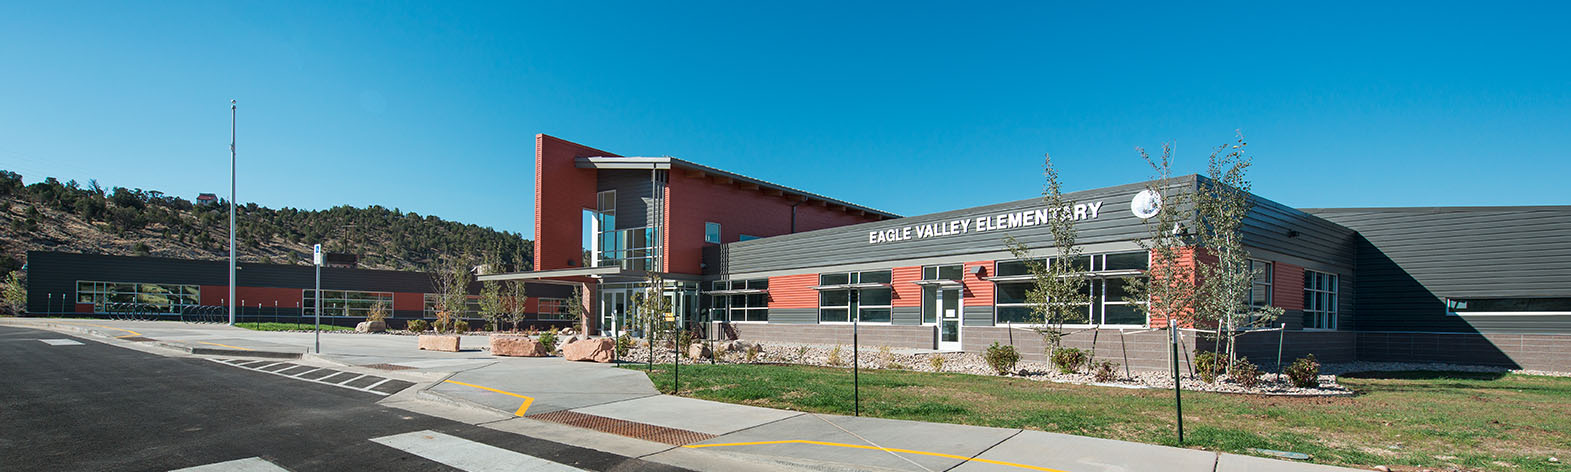 Eagle Valley Elementary School